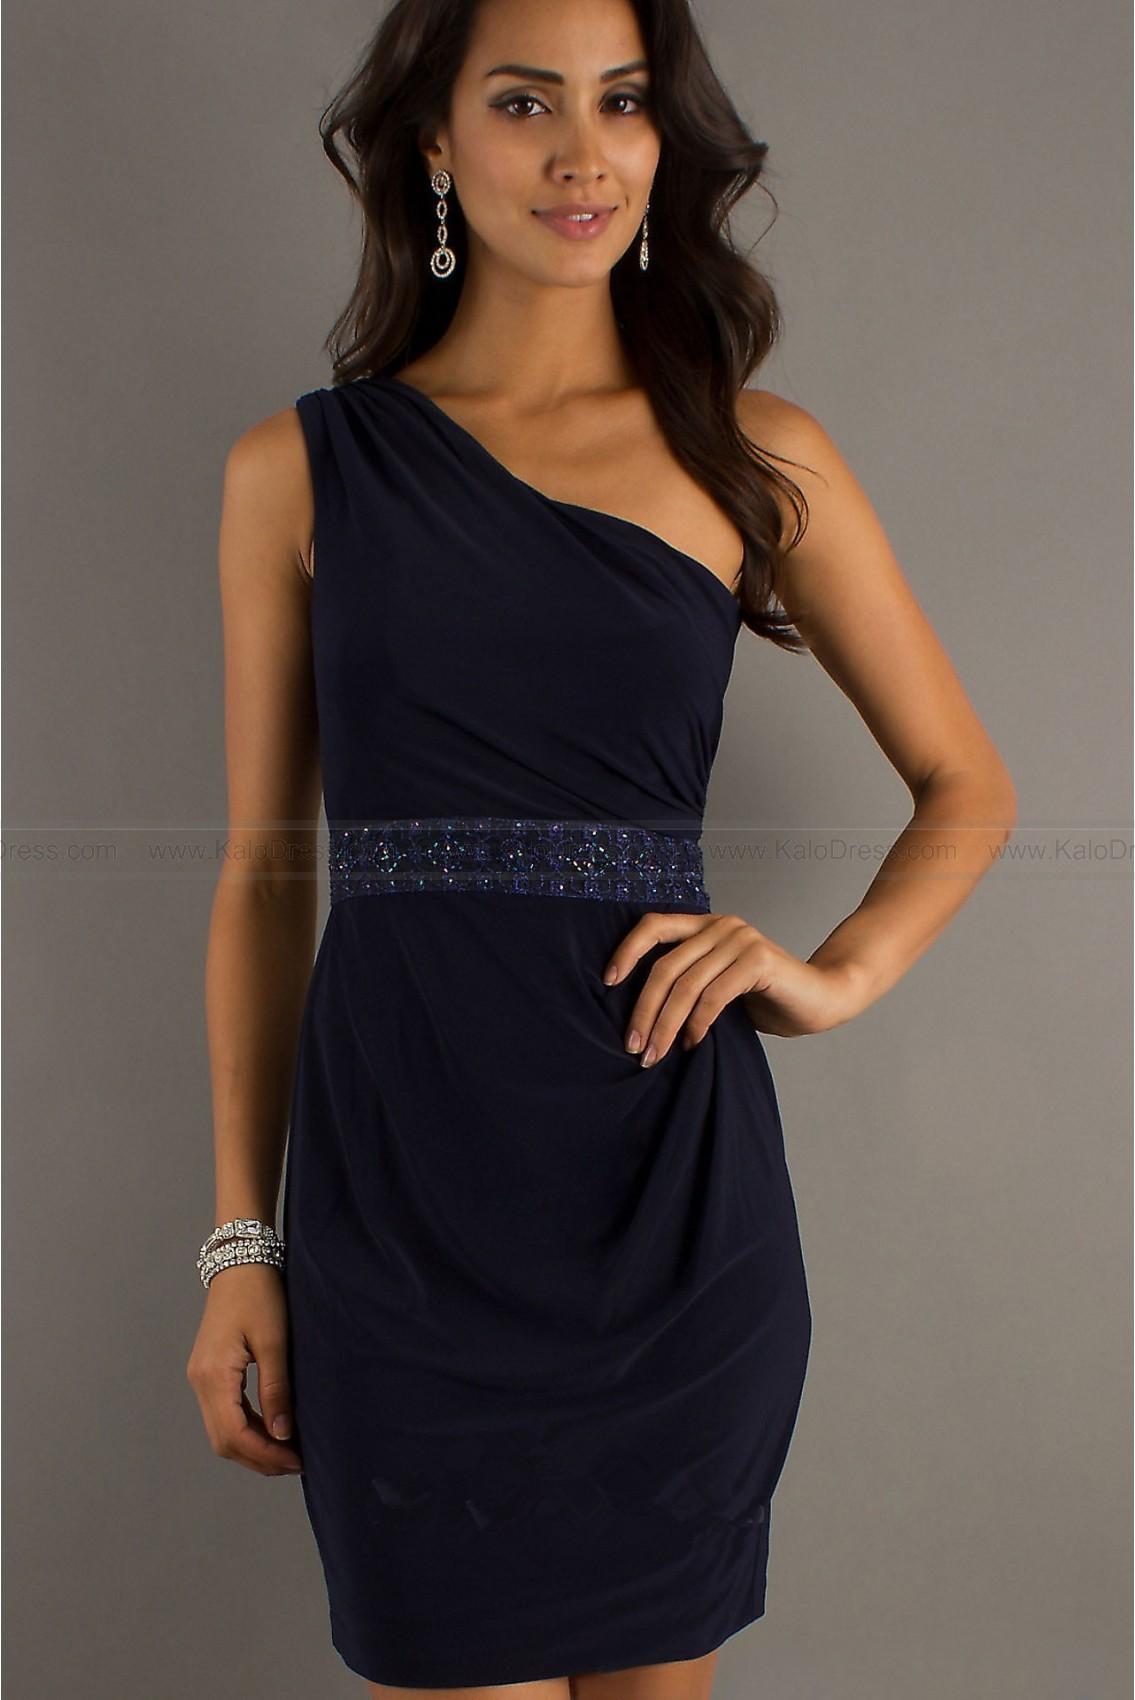 Sheath/Column One Shoulder Chiffon Prom Dress - Cocktail Dresses - Special Occasion